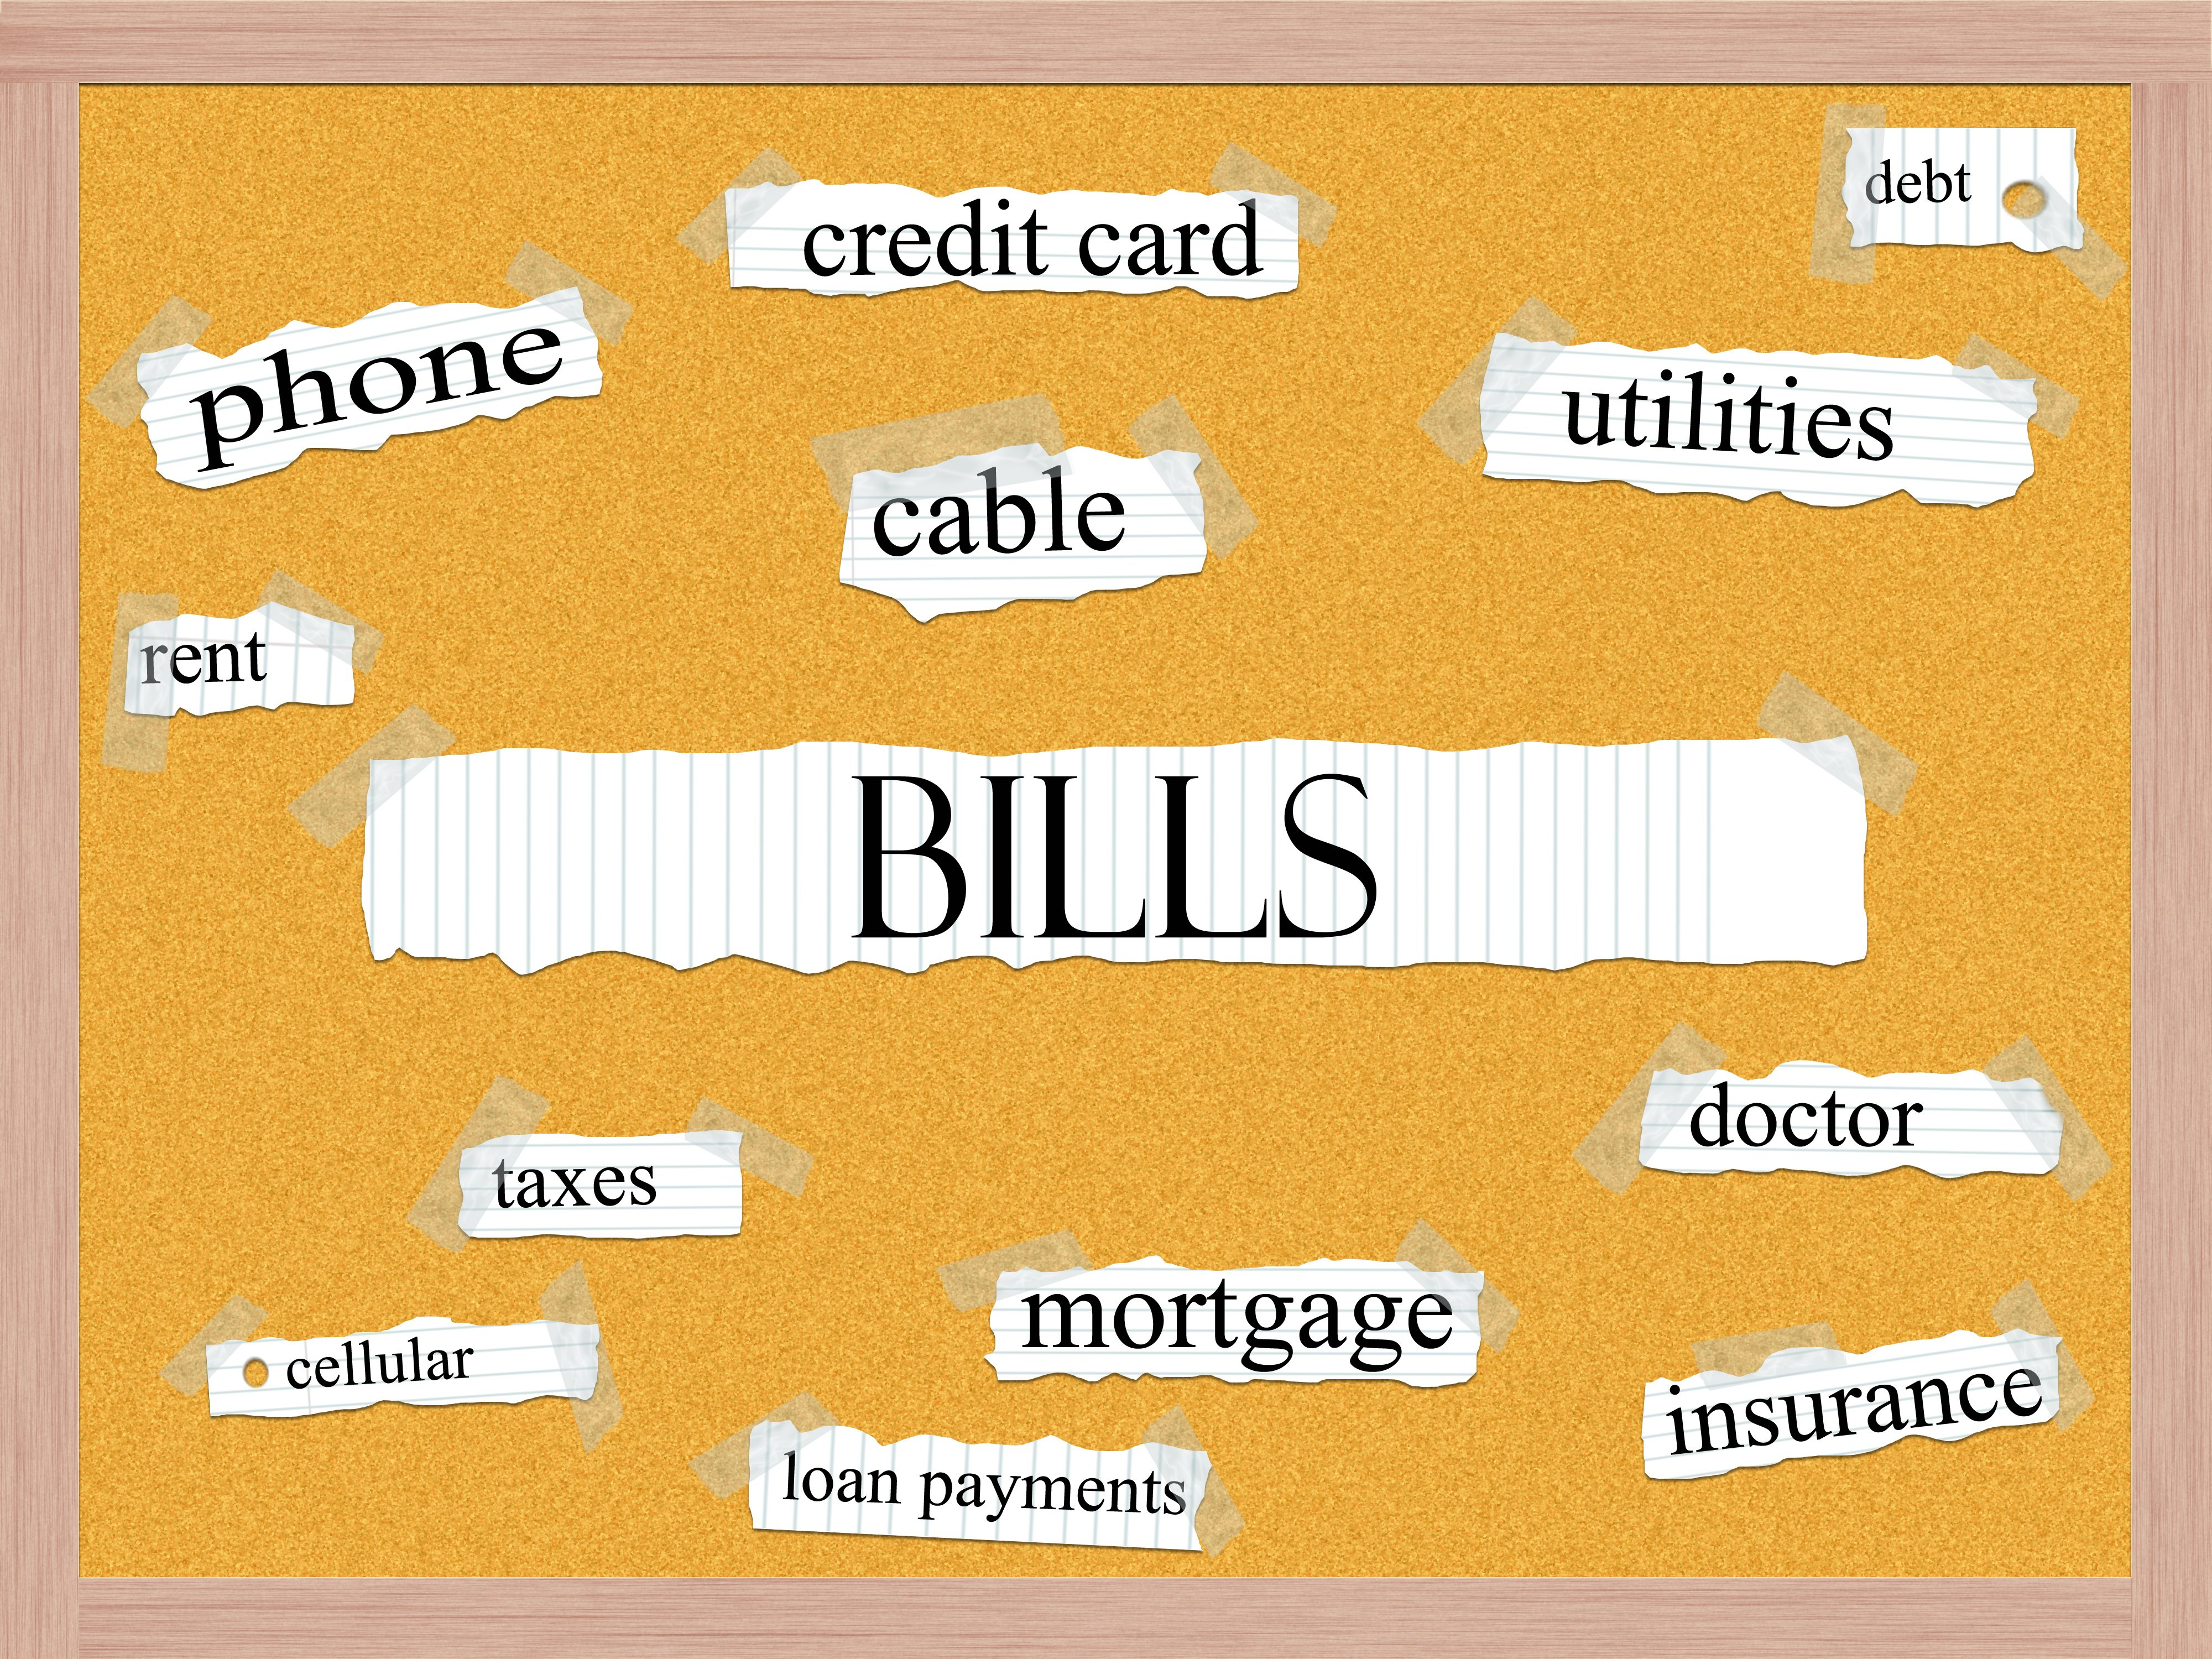 Debts Included in an IVA